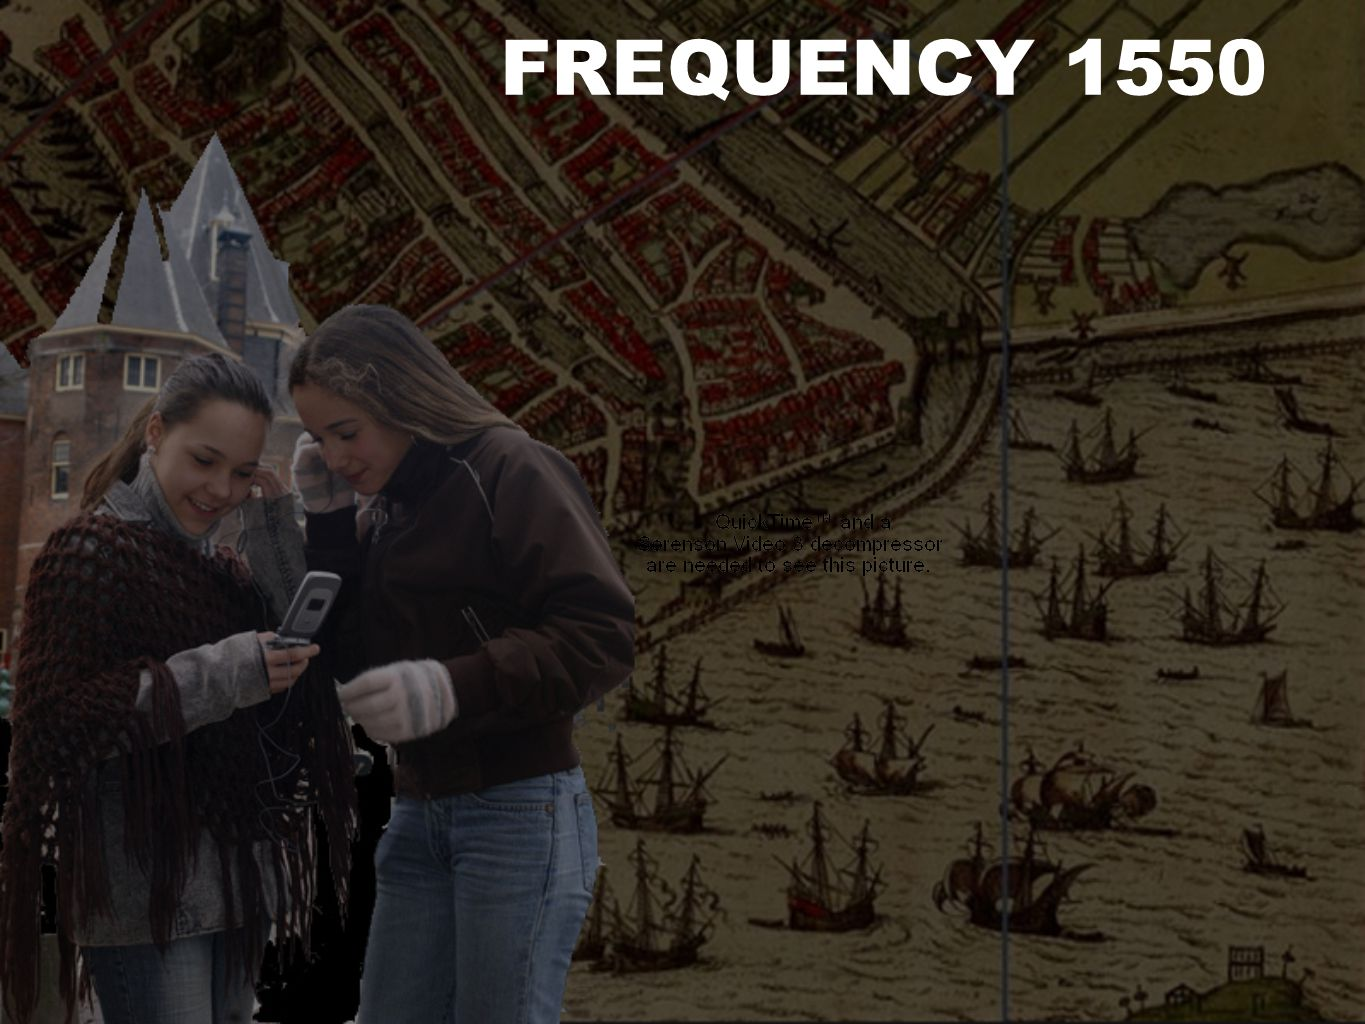 FREQUENCY 1550